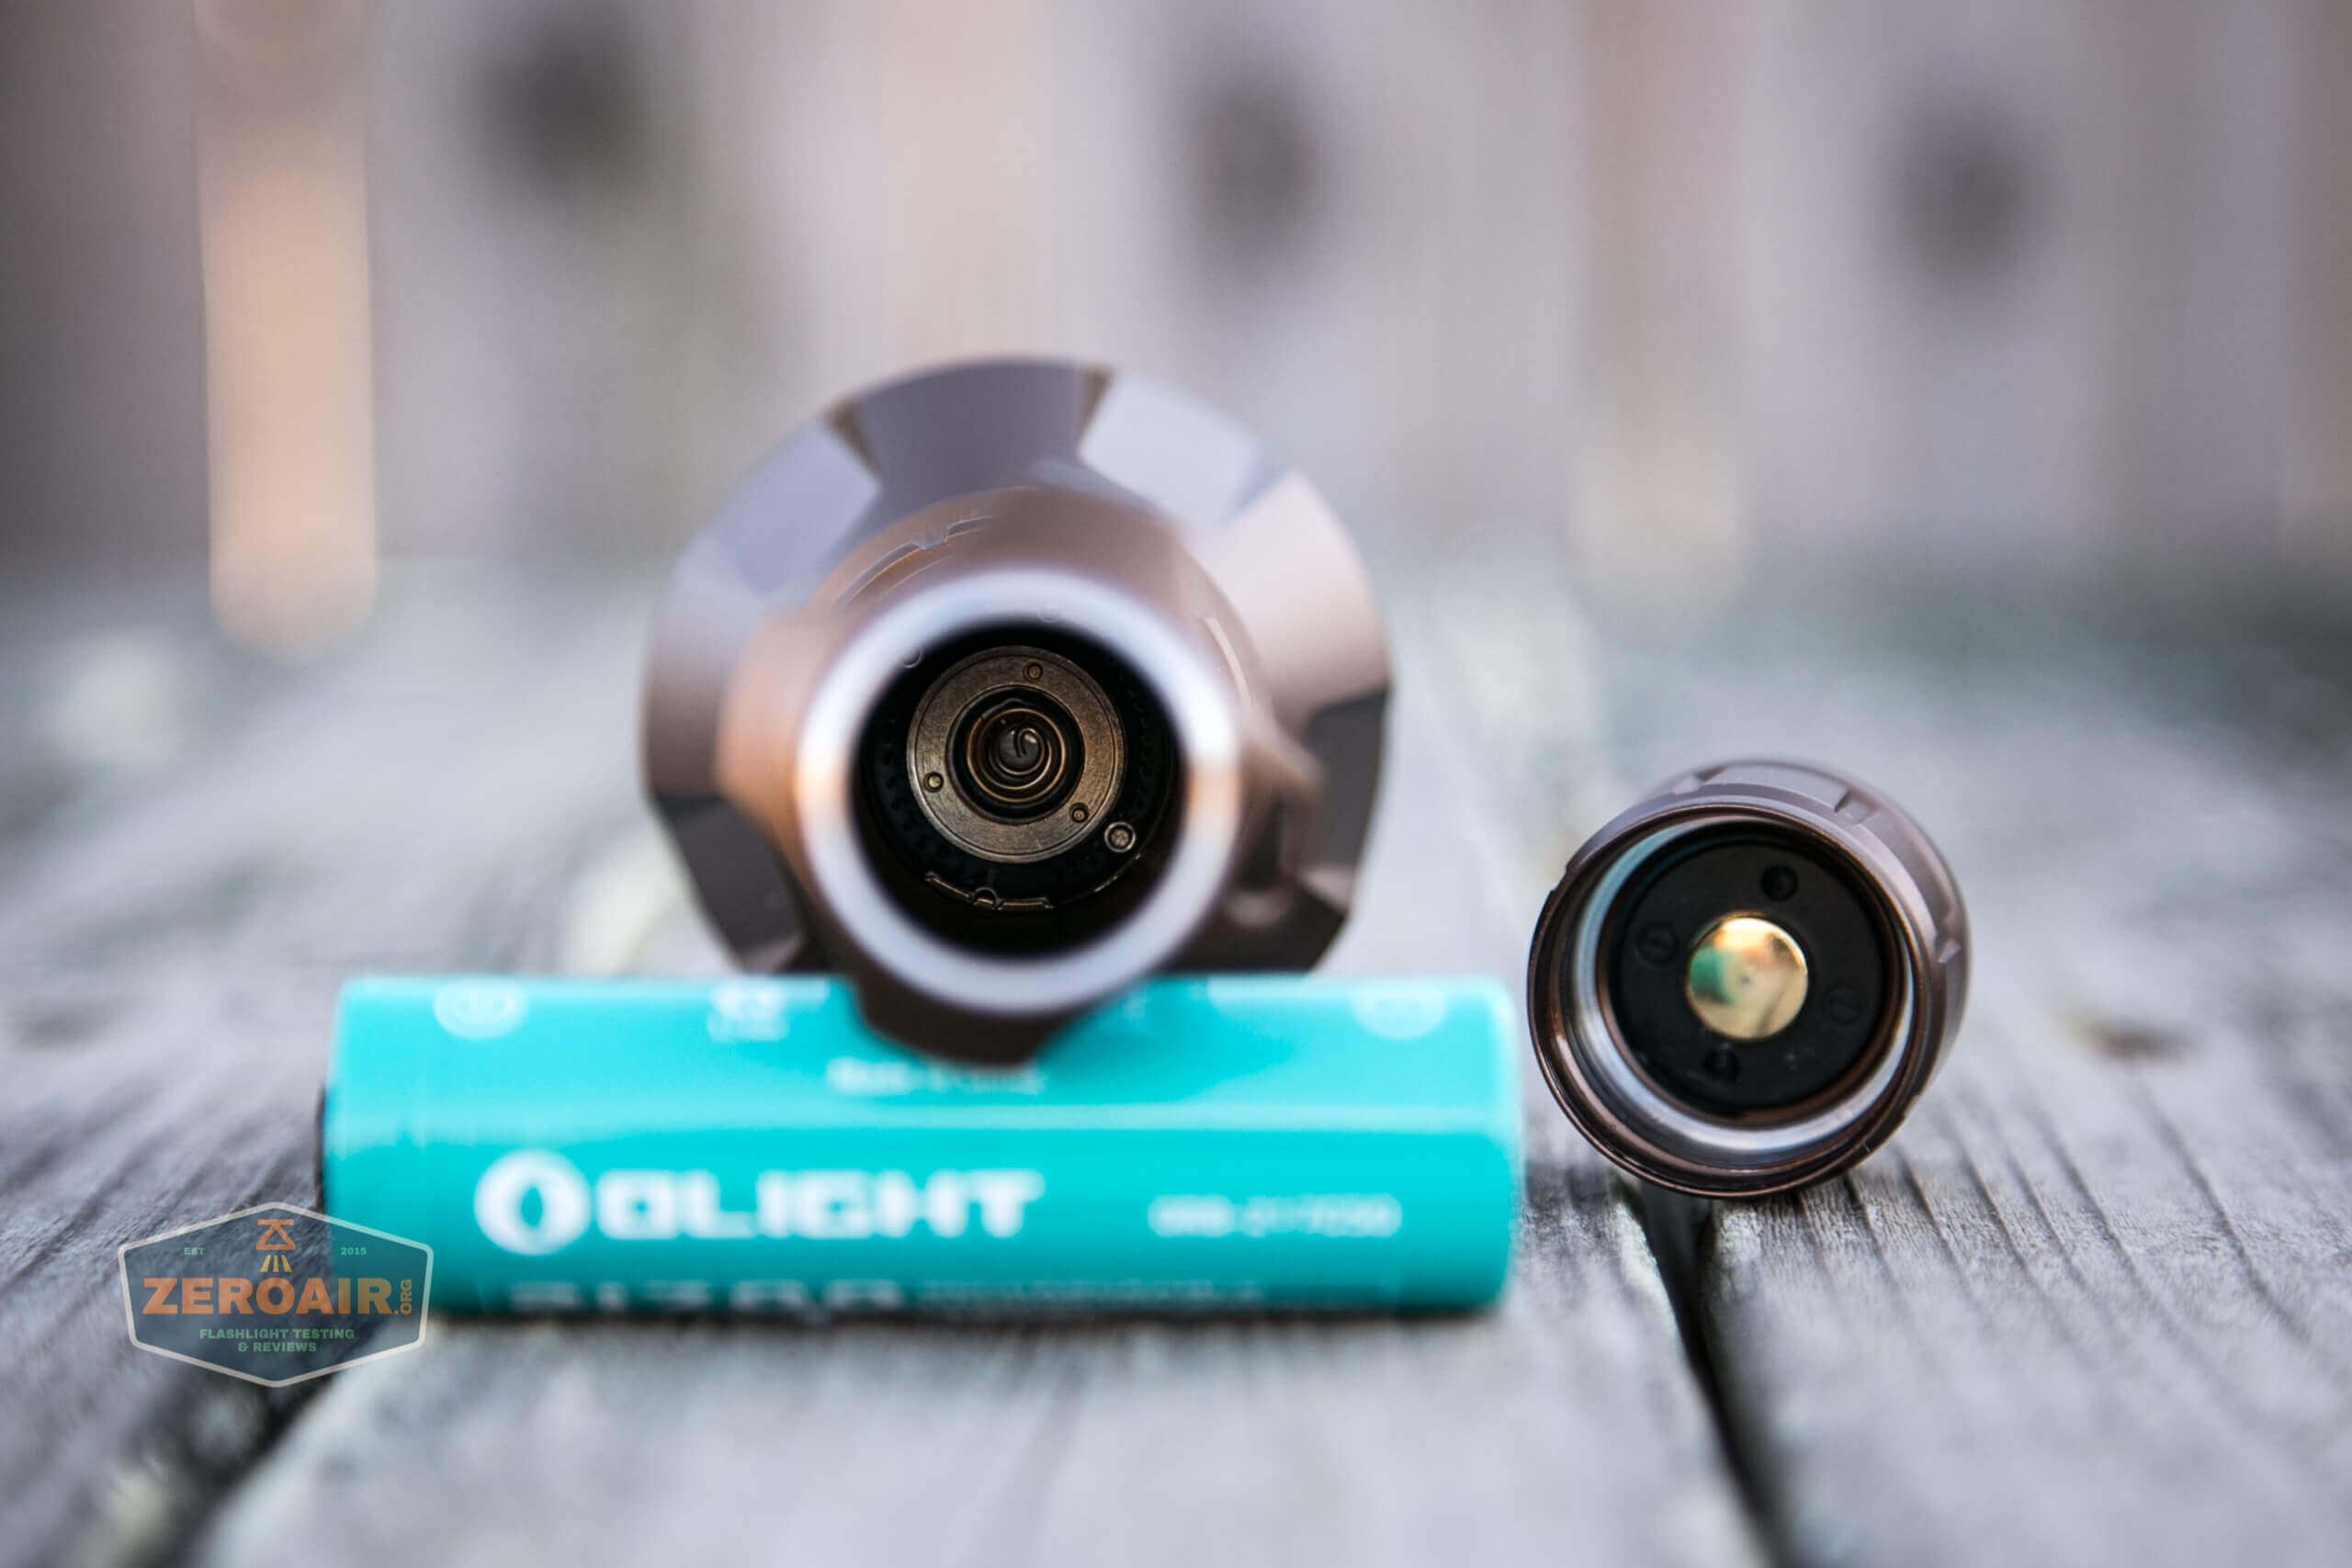 olight warrior x turbo desert tan flashlight head contacts